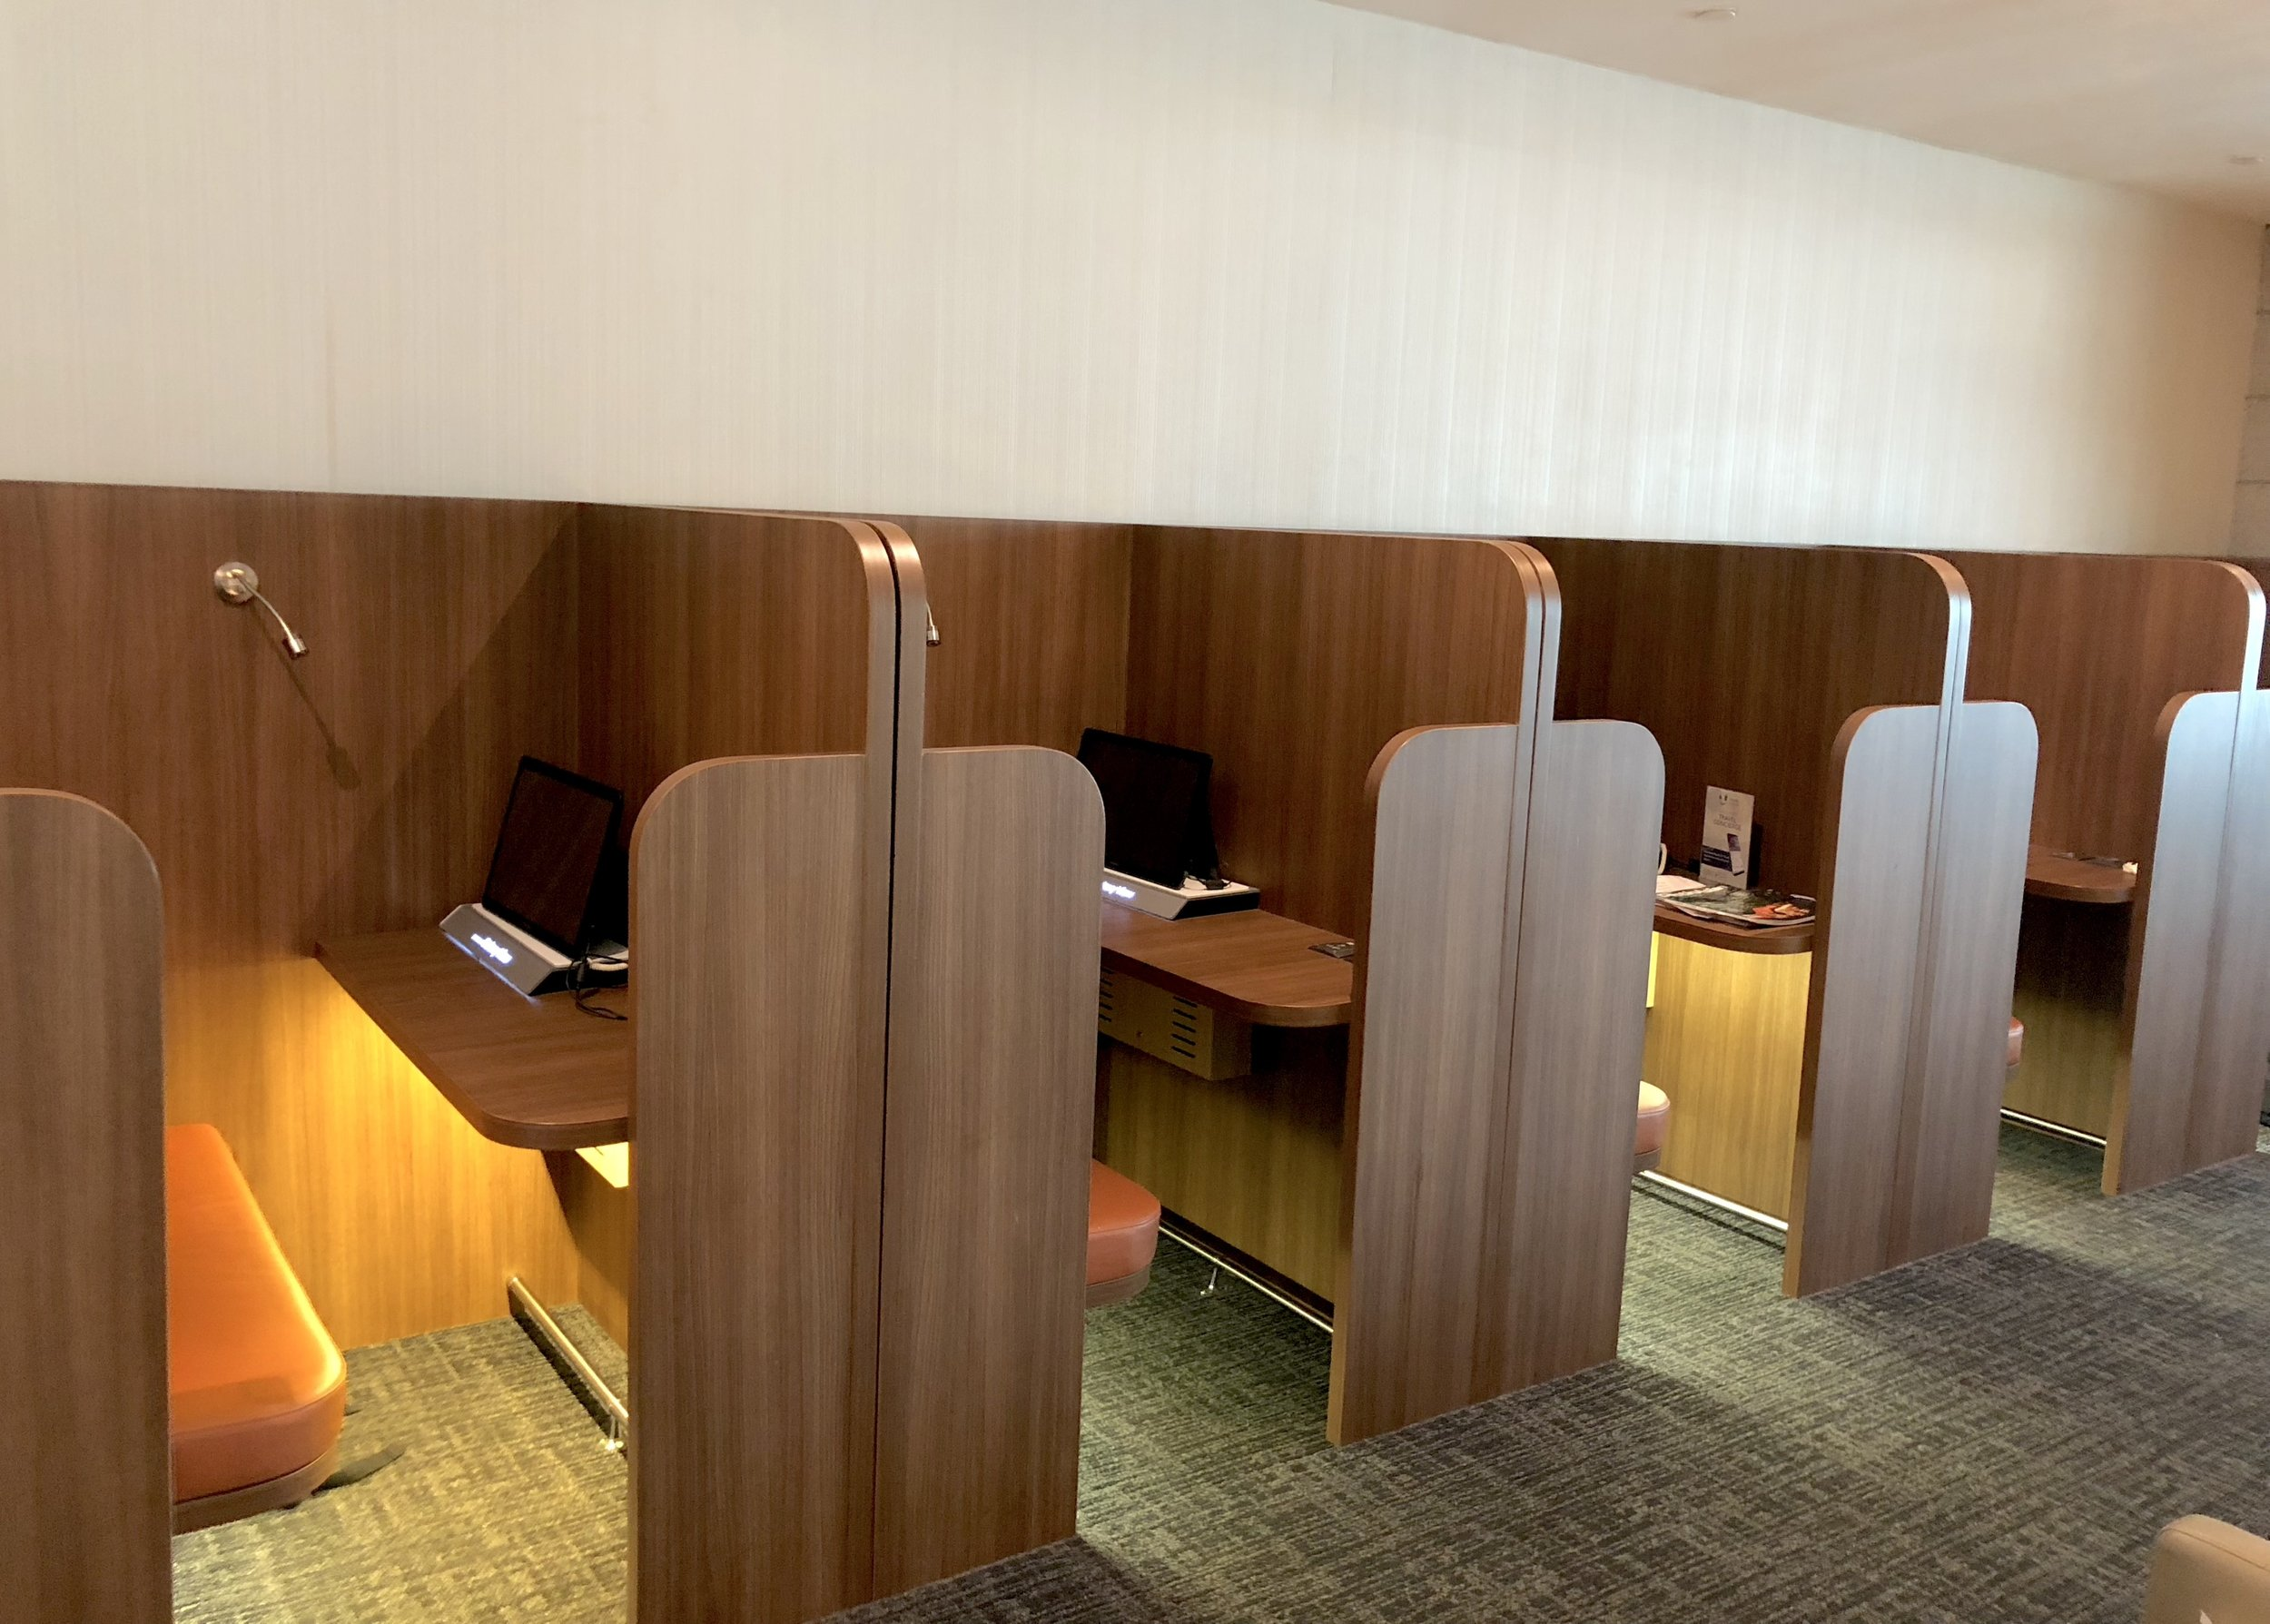 Savvy cubicles ideal for serious work